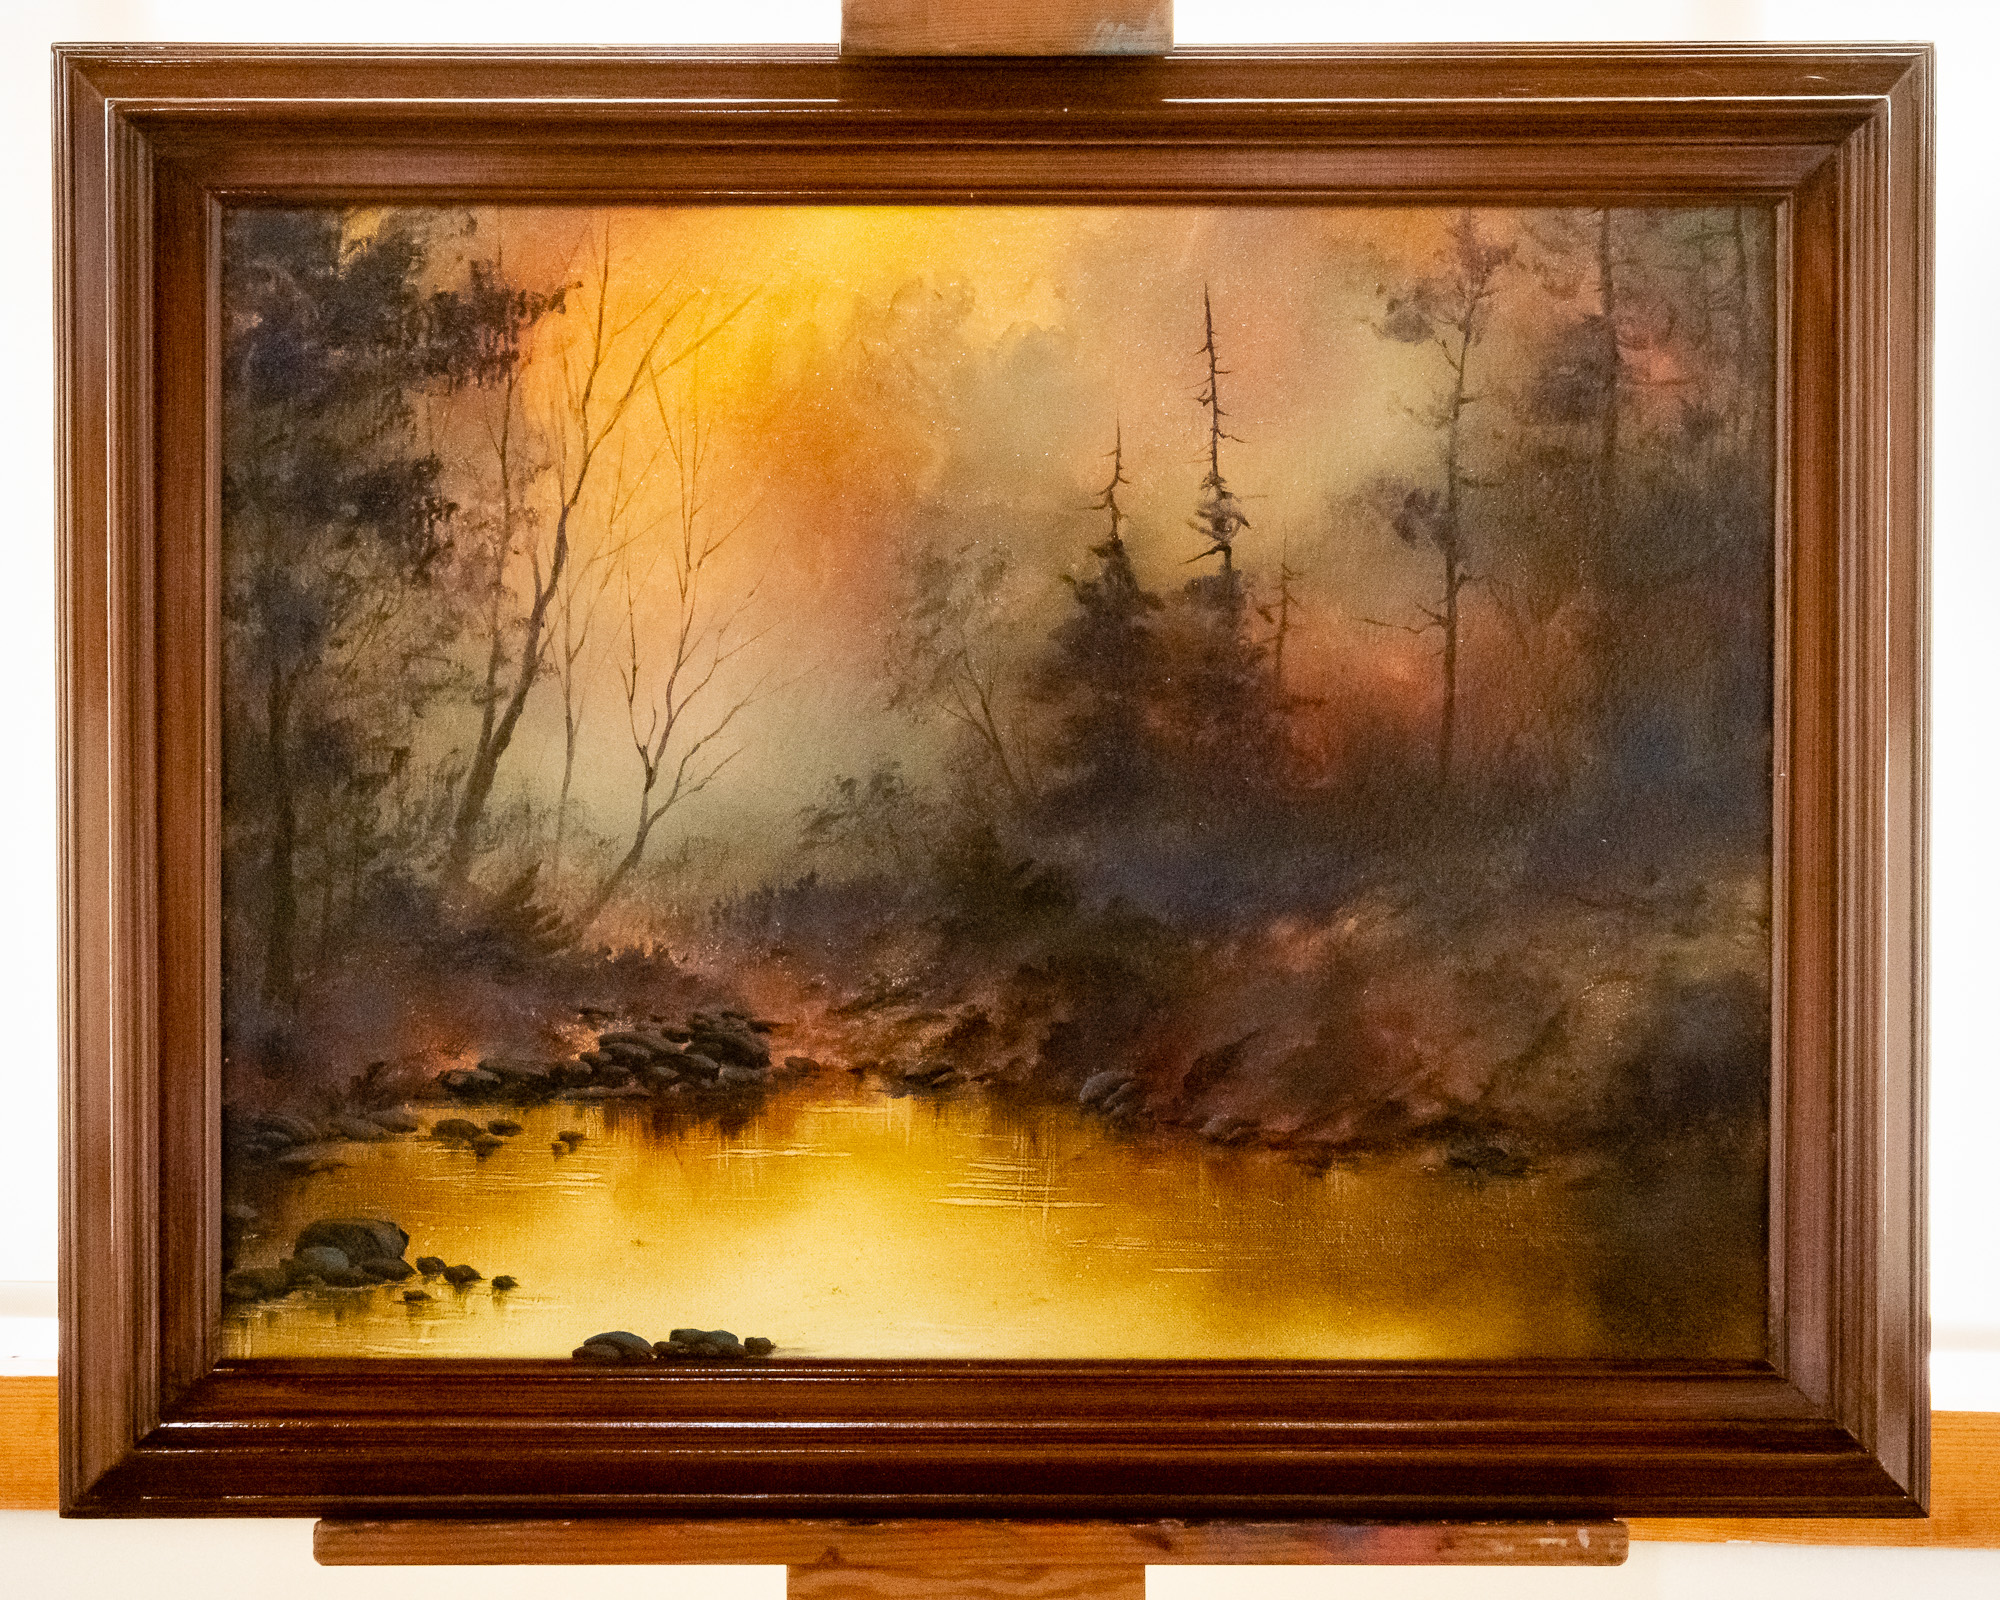 Golden Glow of Morning , an original oil painting by Bob Ross, exhibited at Franklin Park Arts Center